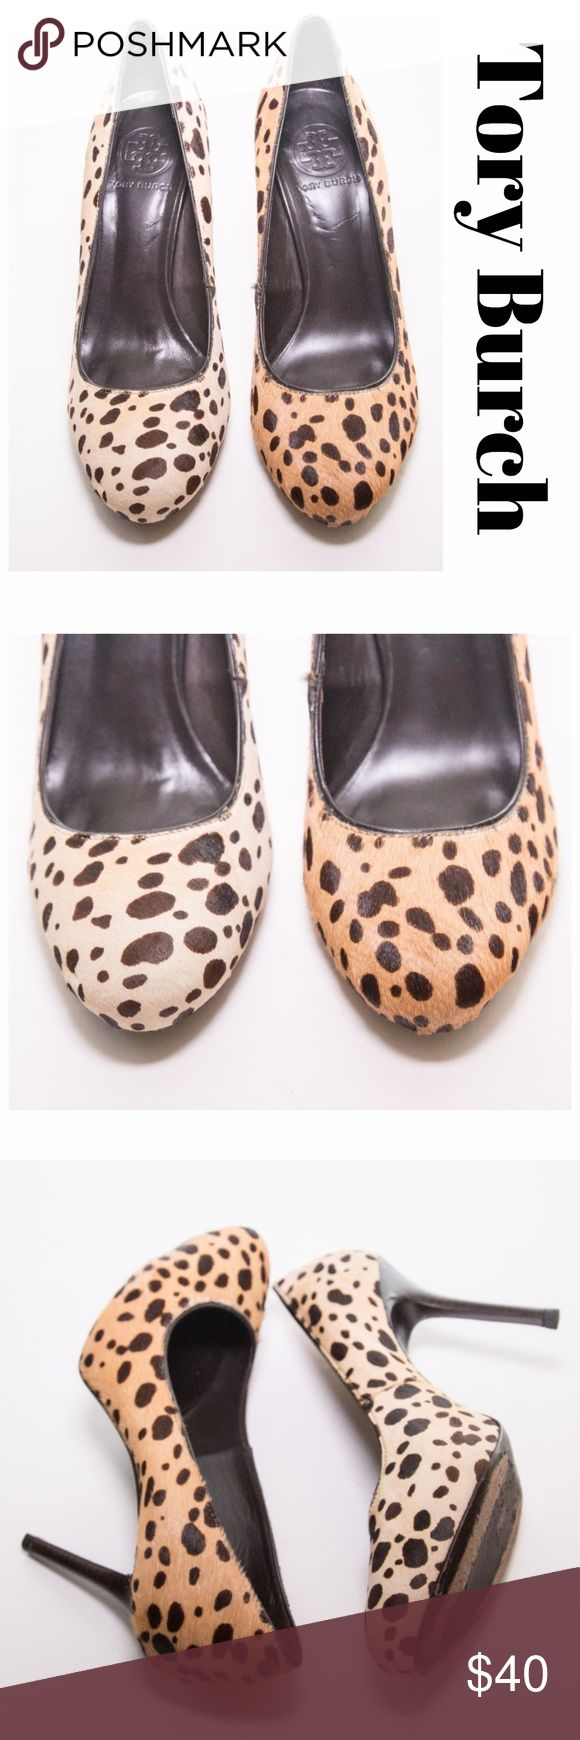 Tory Burch Mismatch Animal Print High Heels Size 7 Gorgeous one of a kind animal print mismatch shoes from Tory Burch.  The darker color is fury while the one is not.  Pre-loved and in great condition. Tory Burch Shoes